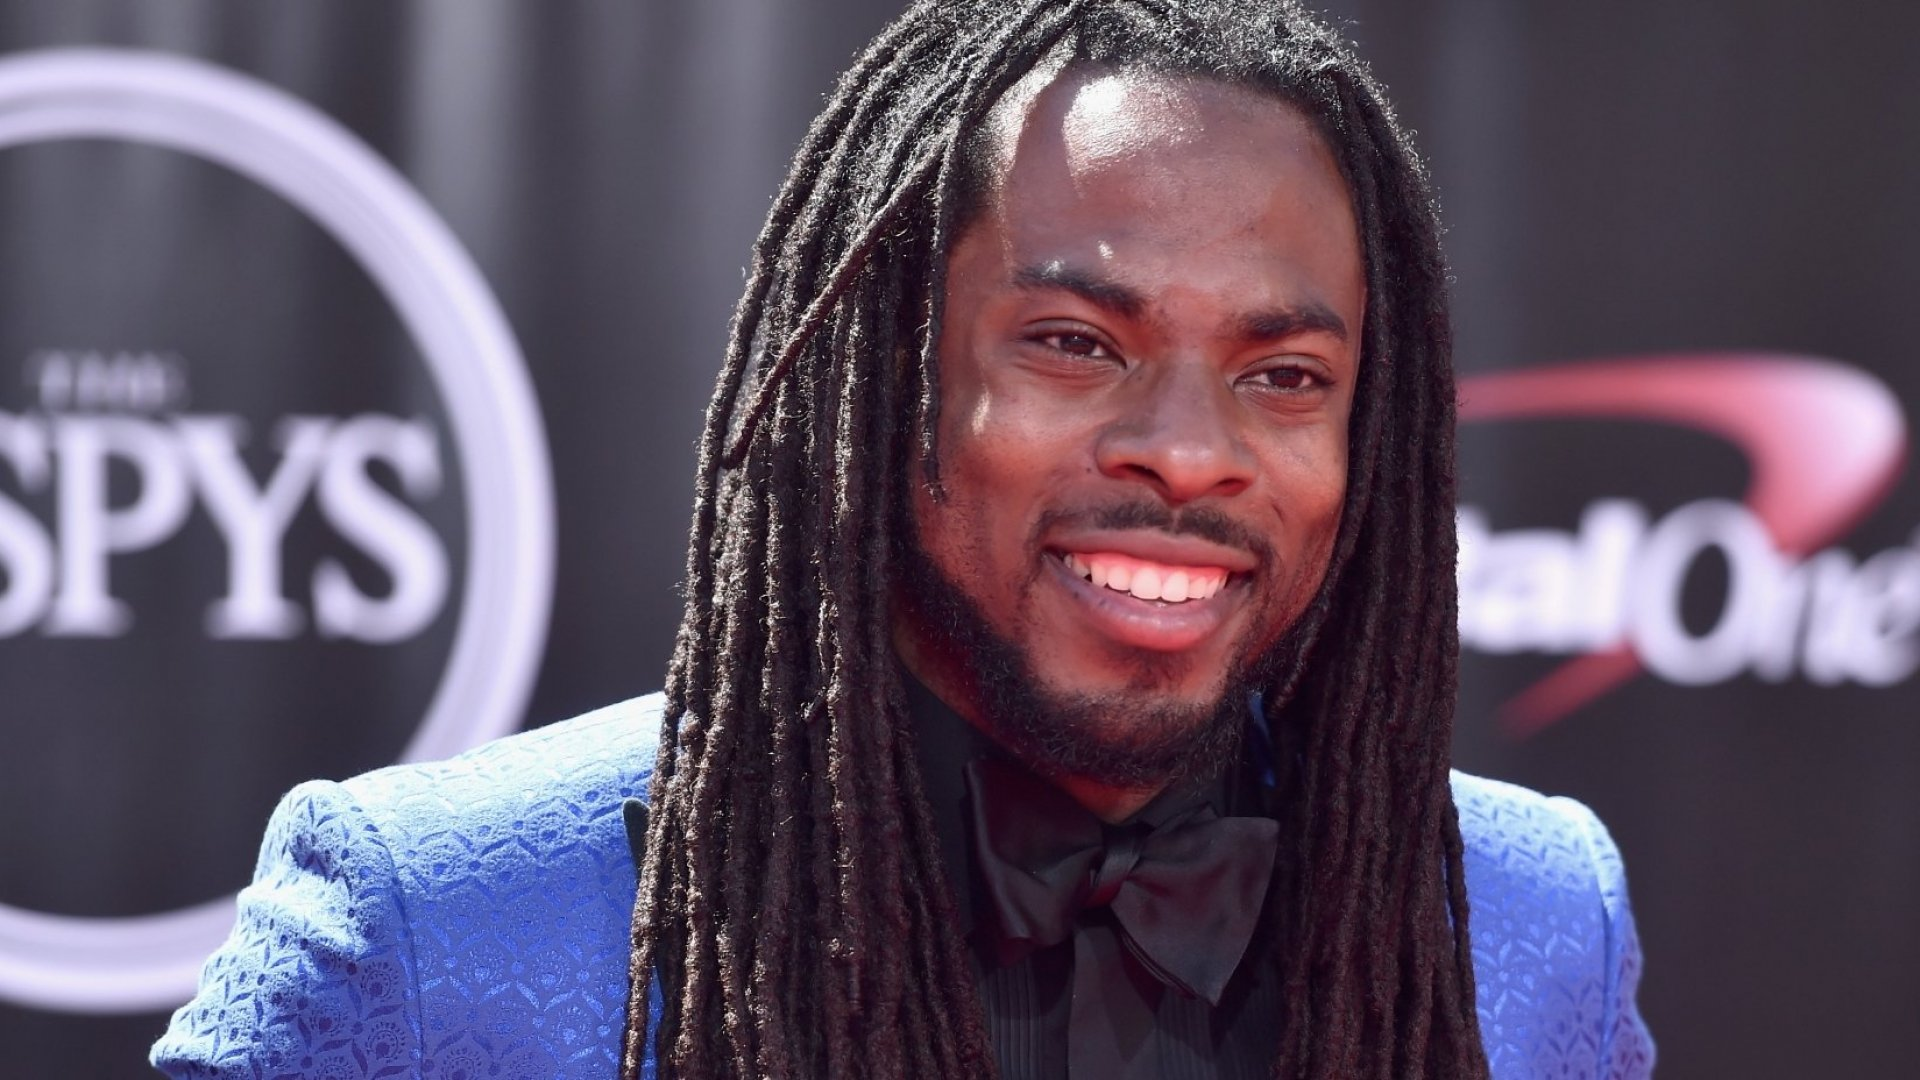 Seattle Seahawks defensive back Richard Sherman is heavily invested in cryptocurrencies.